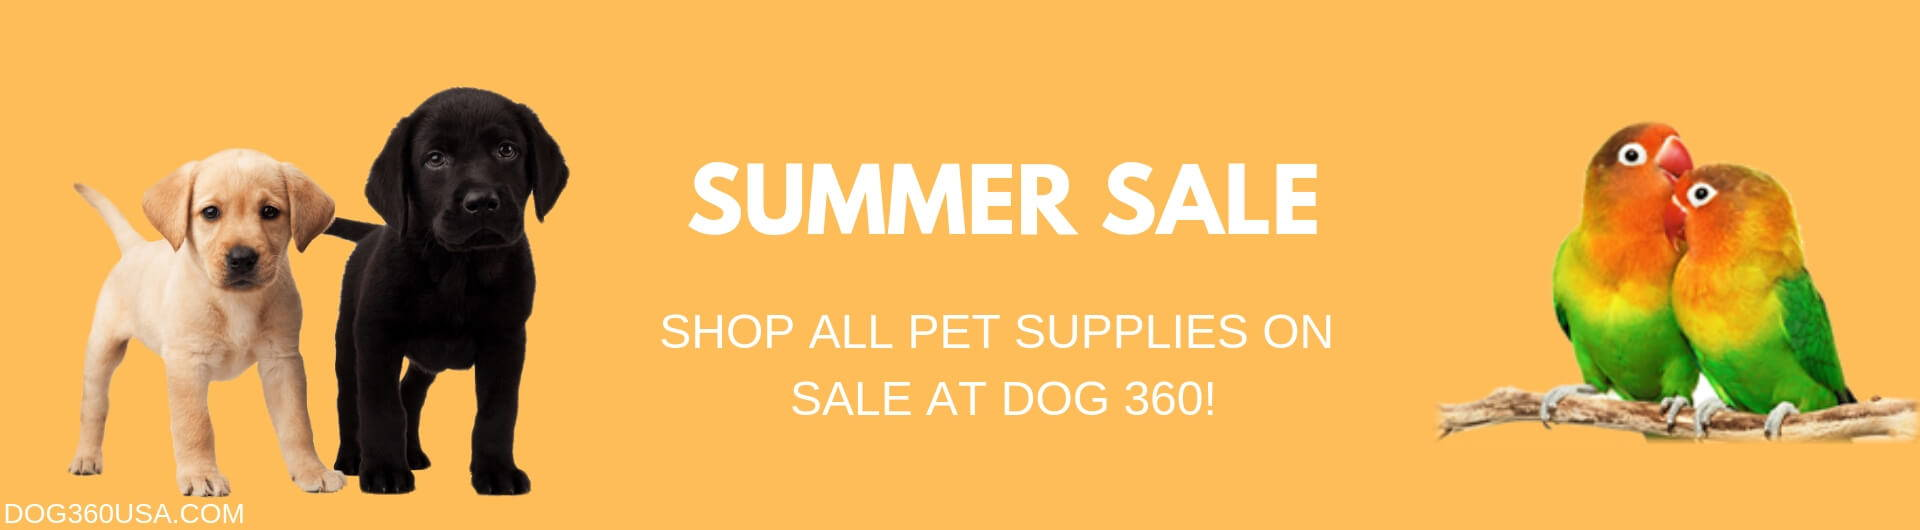 Aquatics sale dog 360 huge savings